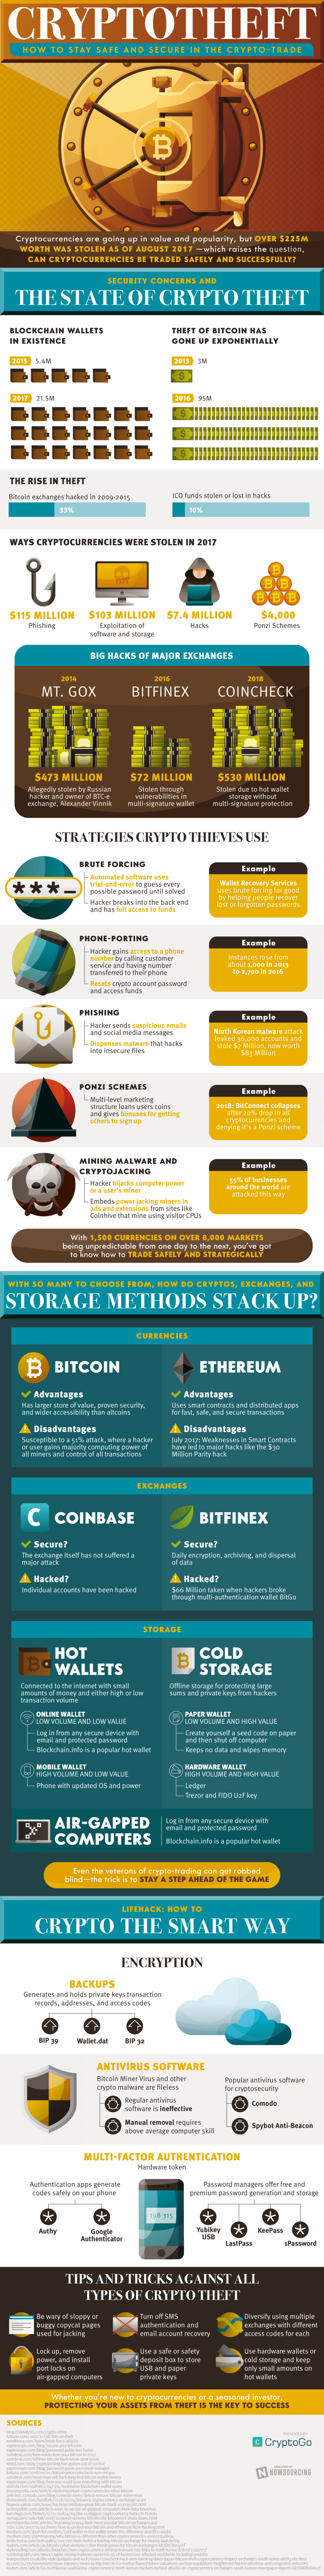 Protecting Your Crypto Fortune Infographic